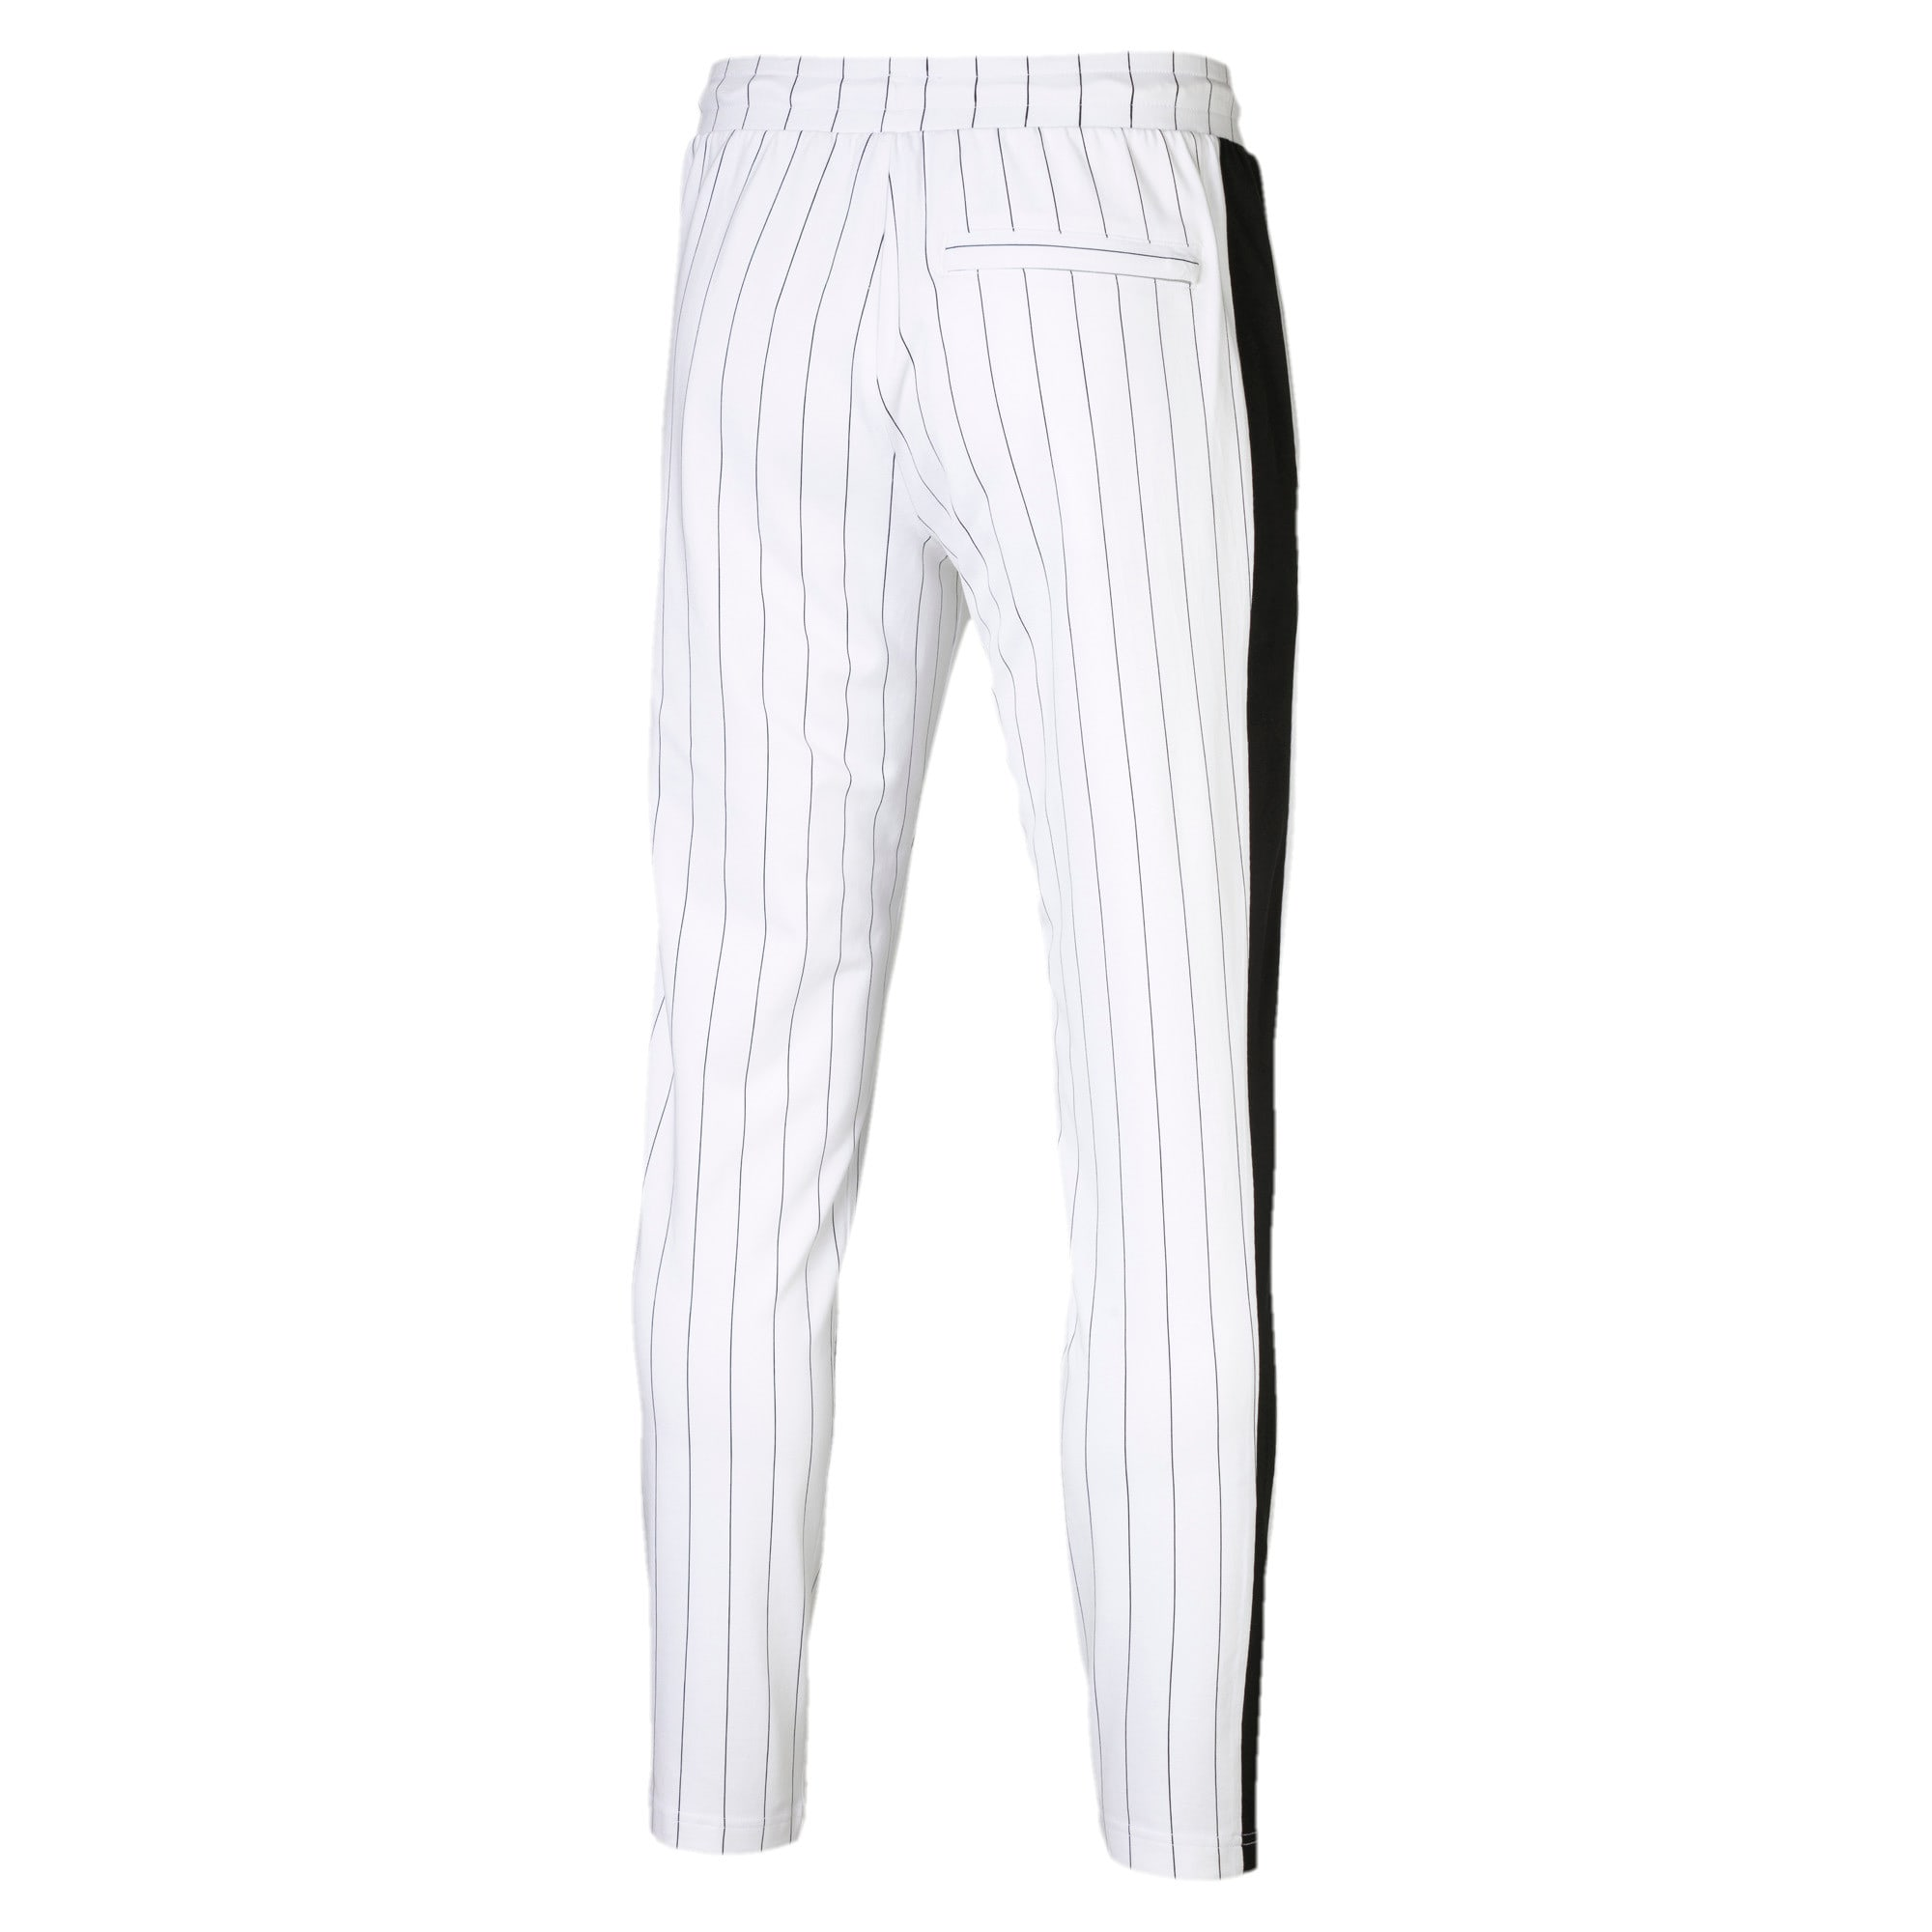 Thumbnail 4 of Archive Pinstripe T7 Men's Track Pants, Puma White-AOP, medium